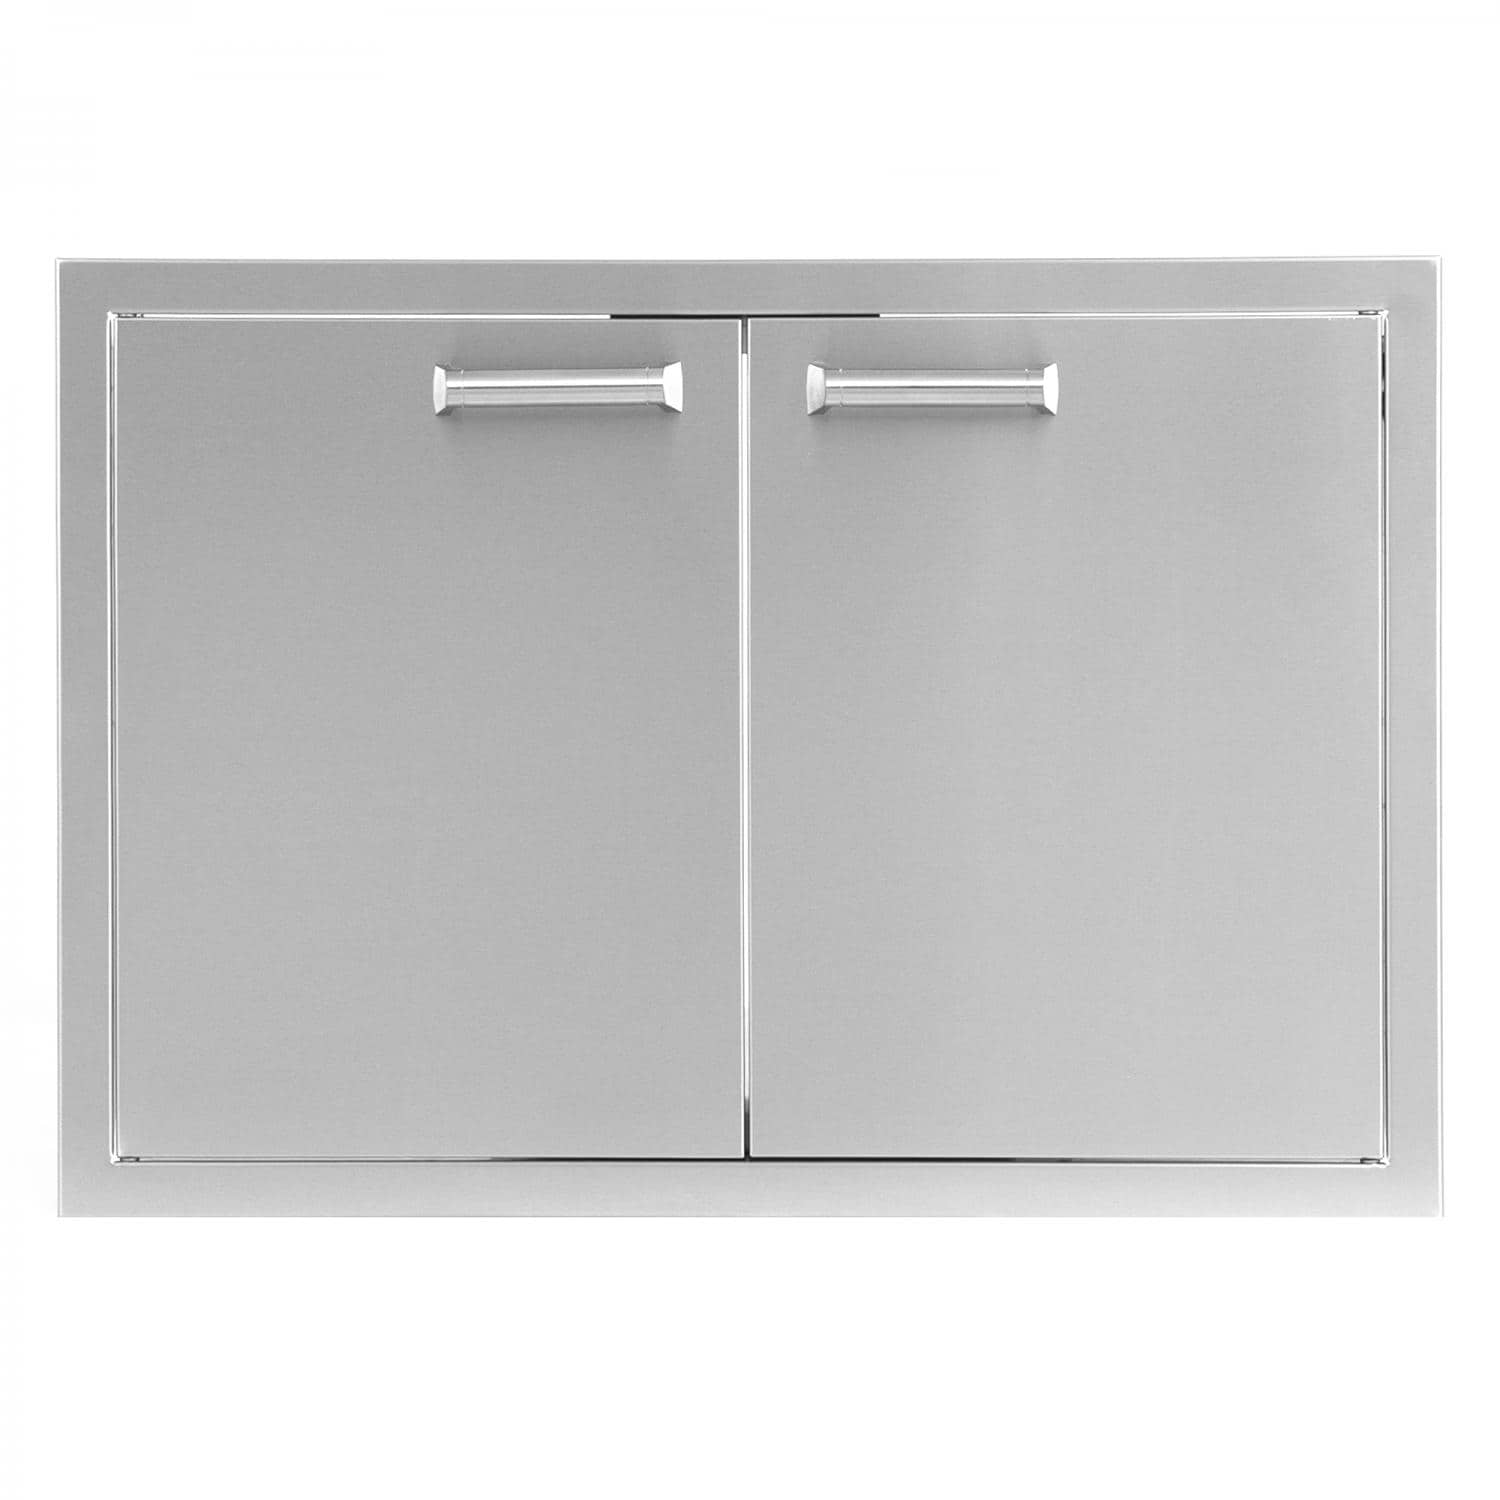 Sonoma series 30 inch stainless steel double for Door 9 sonoma